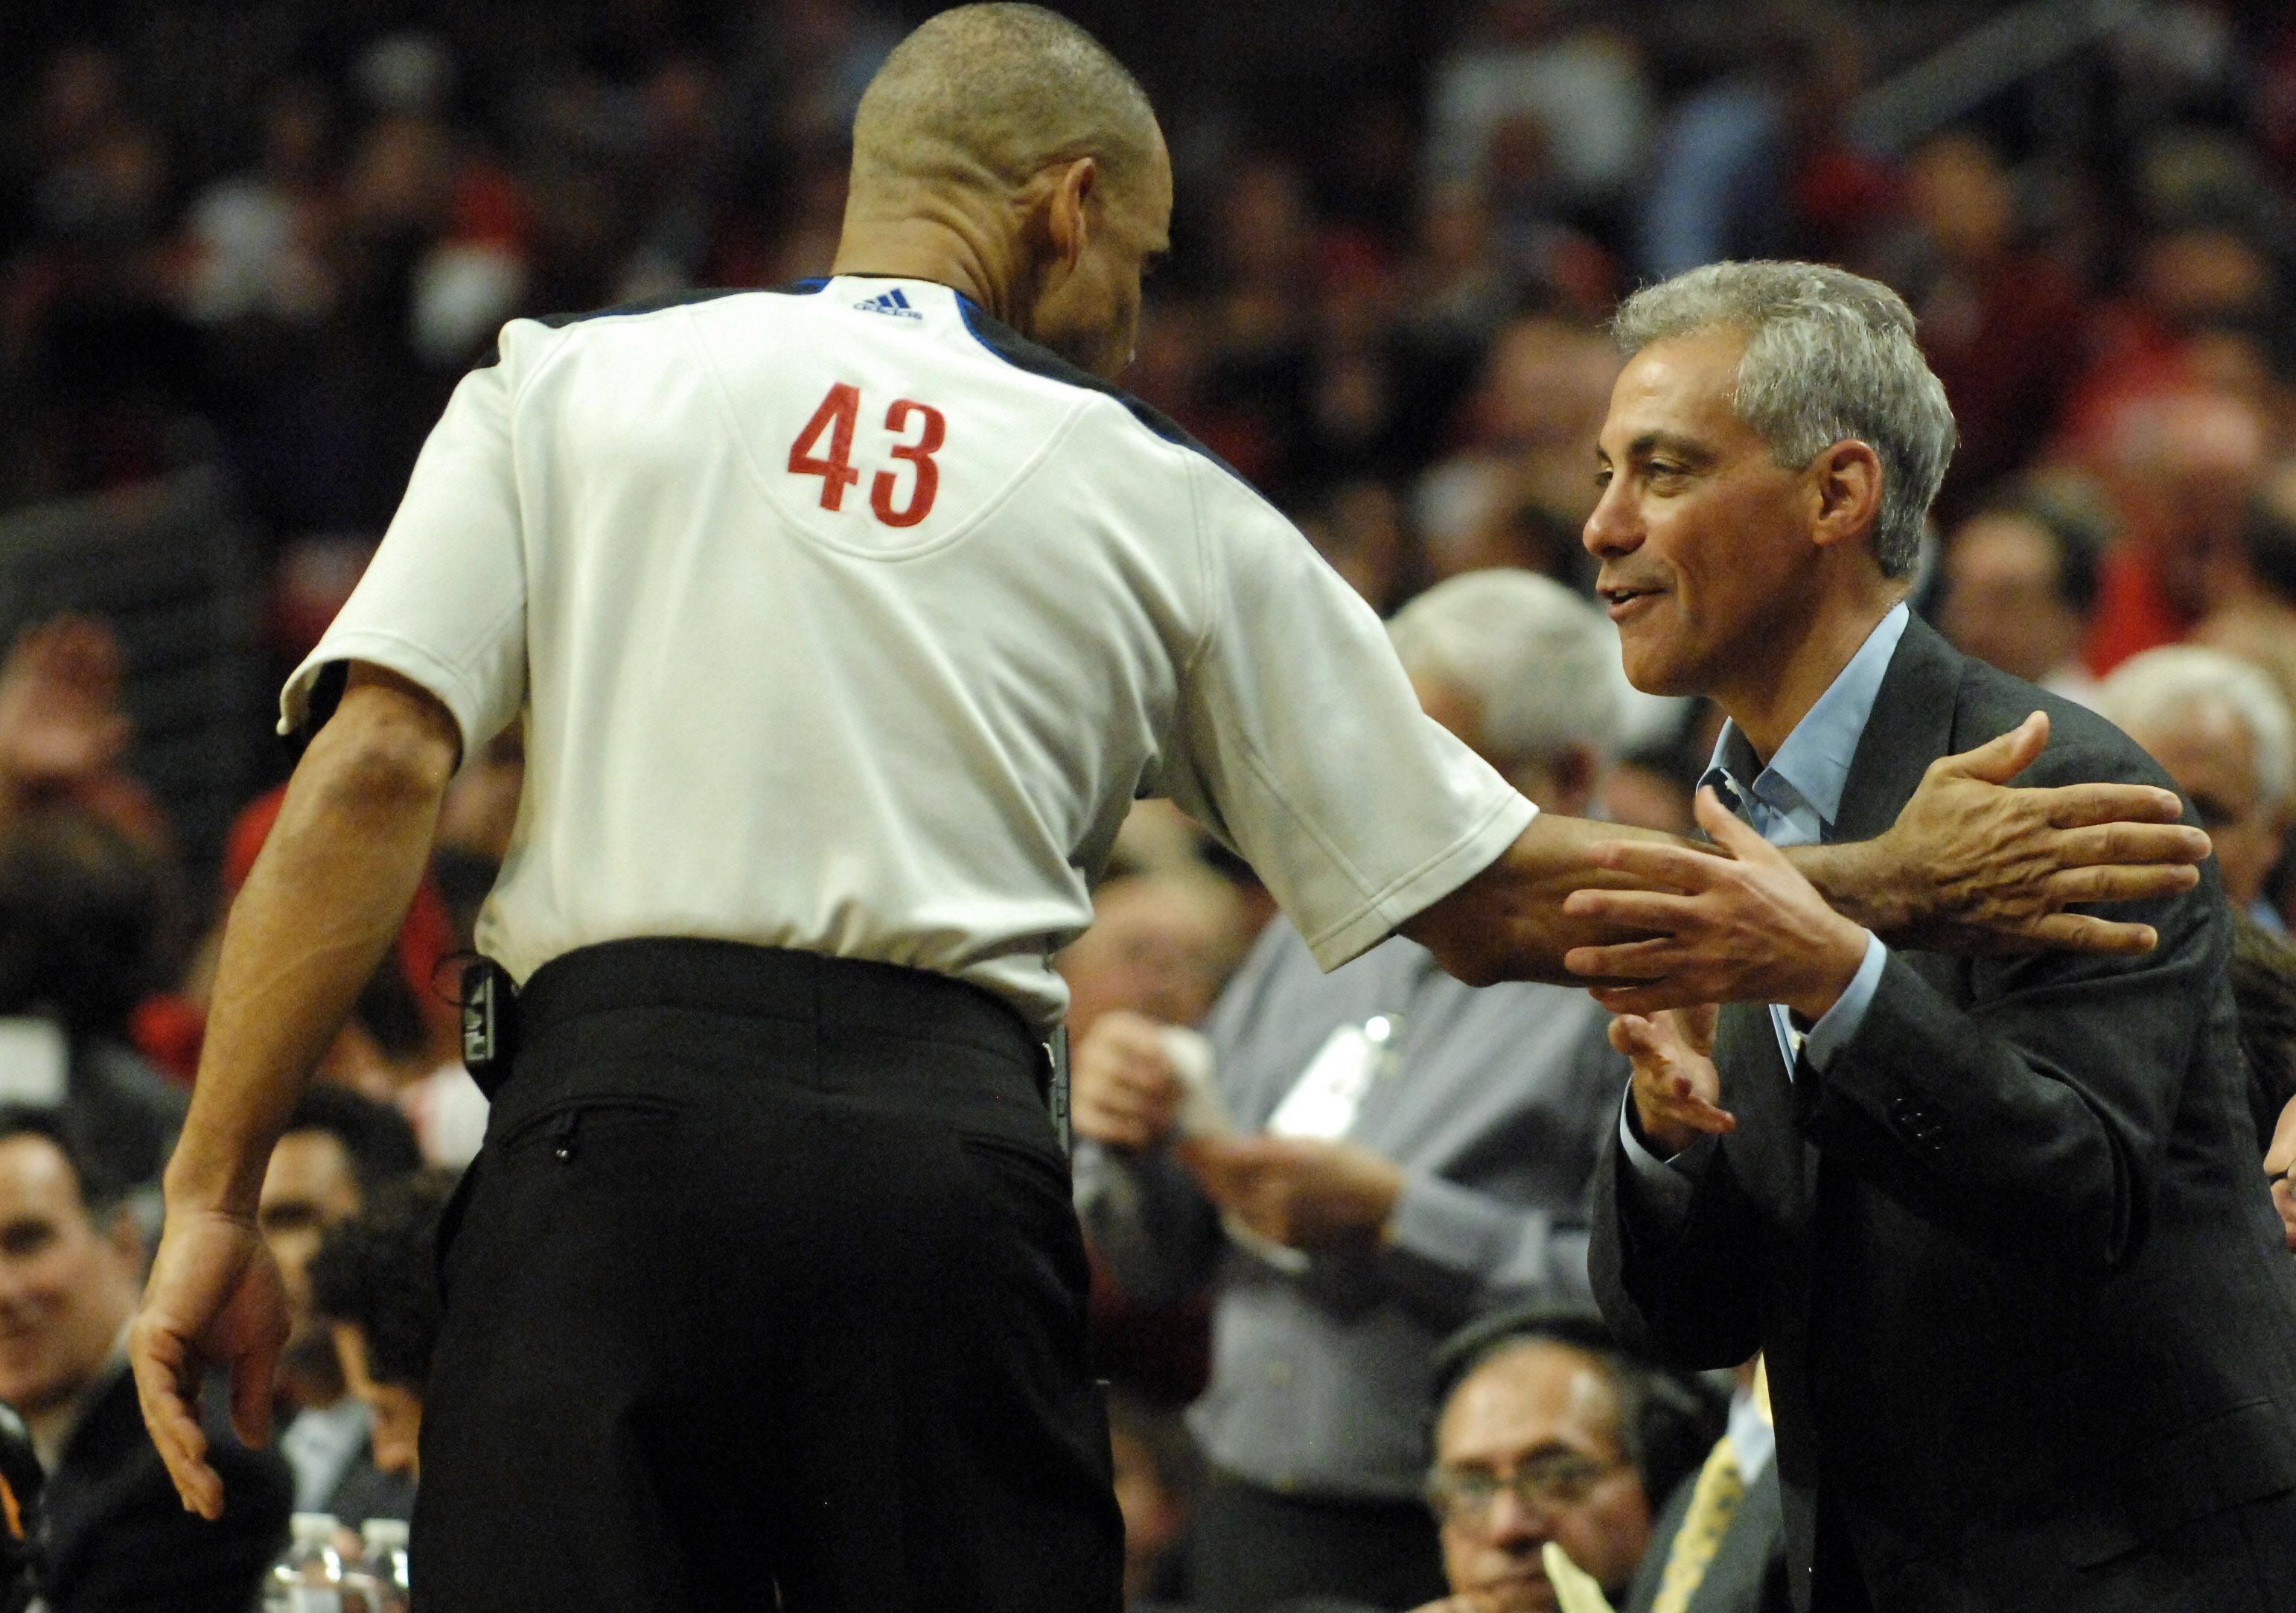 Mayor Rahm Emmanuel jokes with referee Dan Crawford during game 5 of the NBA Eastern Conference quarterfinals in Chicago Tuesday.